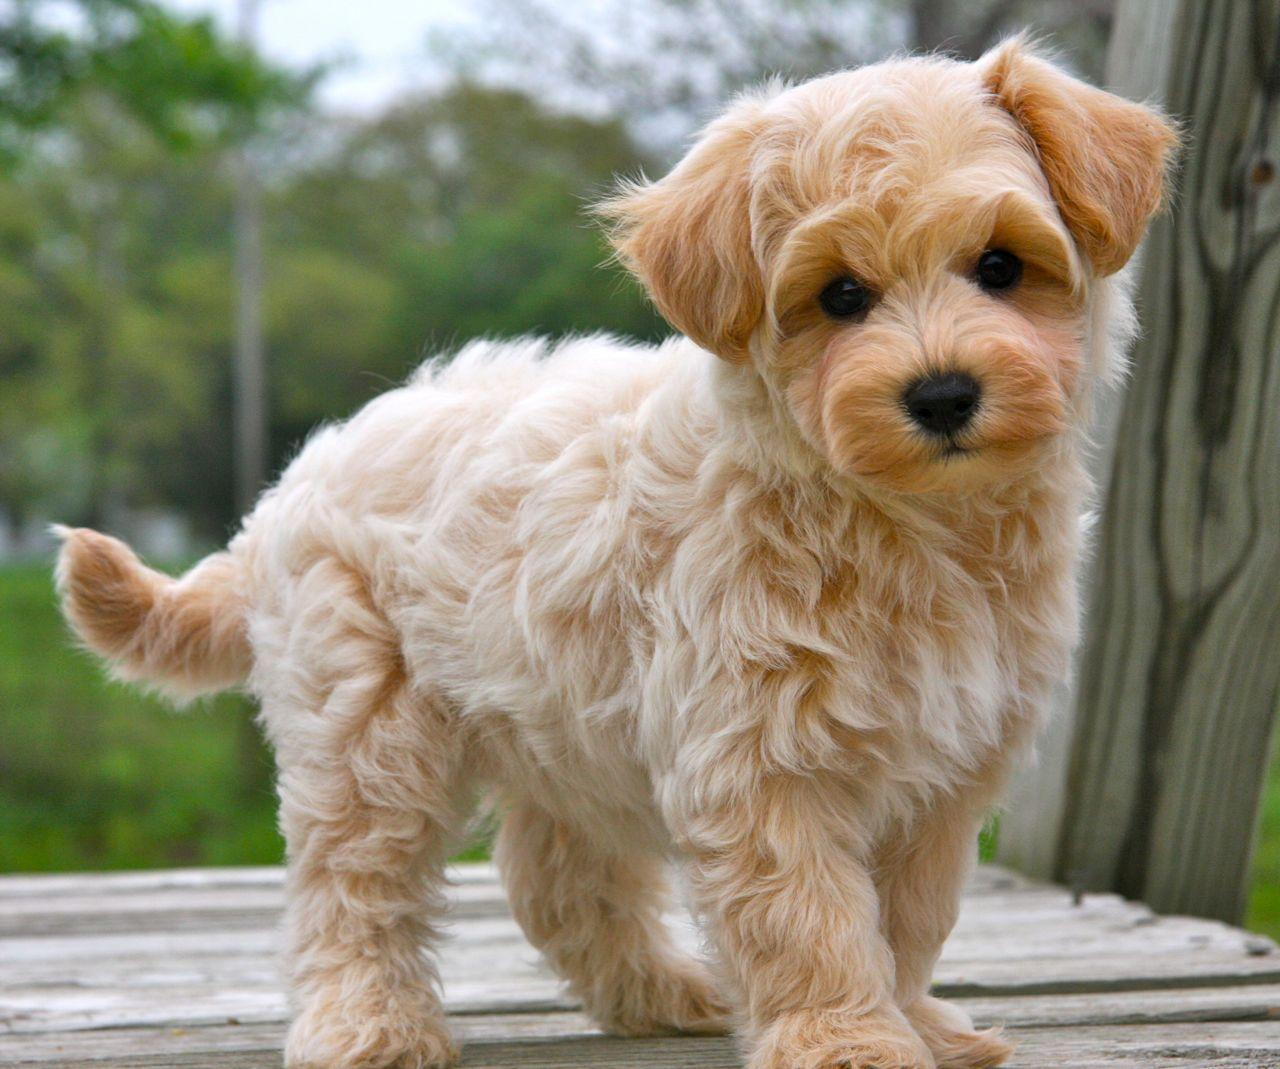 maltipoo puppies - Google Search | Want one ❤ | Pinterest ...